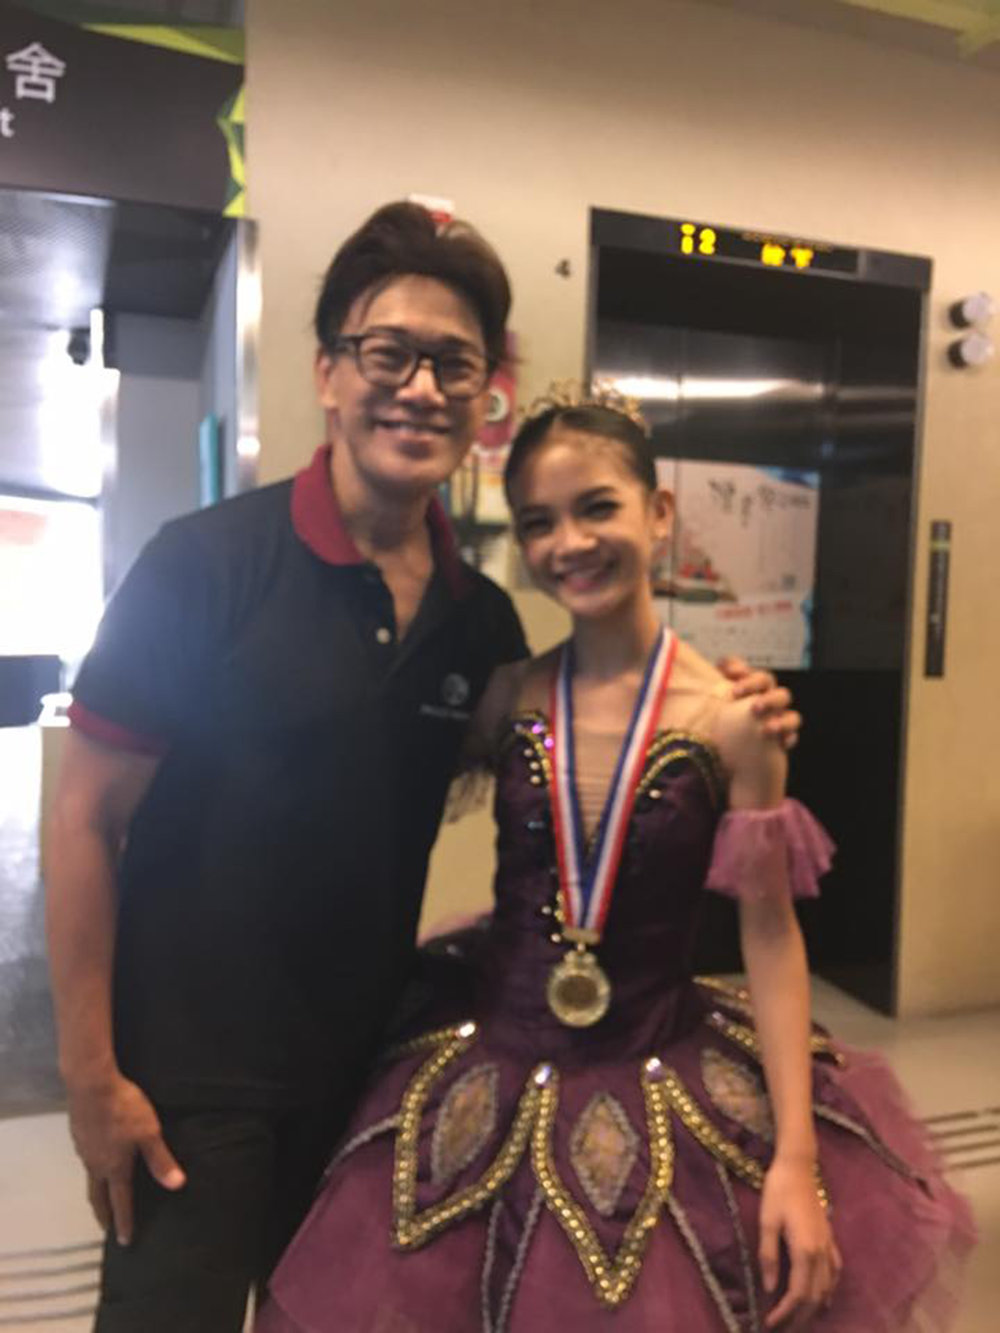 Celebrating with her mentor Osias Barroso outside the Y-Theater in Hong Kong, shortly after the AGP awarding rites. Photo from Osias Barroso's Facebook page